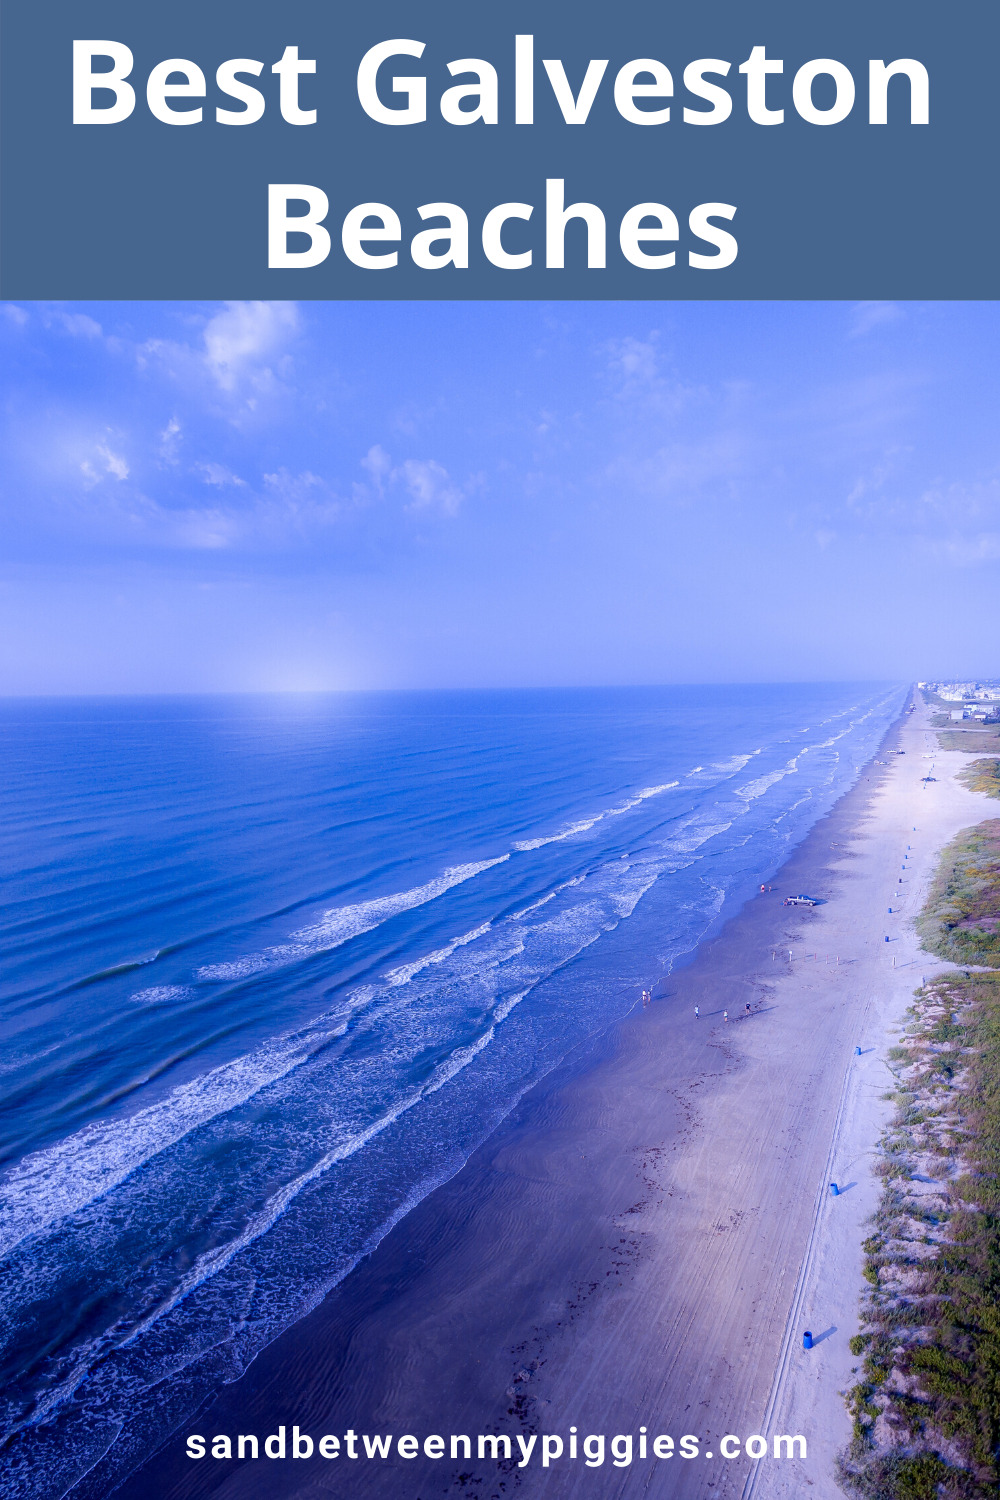 If you're looking to escape to the beach, but you can't go too far, head down to the Galveston beaches? Go see what the Texas coast has to offer! #galvestonbeaches #bestgalvestonbeaches #galvestonbeachesideas #galvestonbeachesthingstodo #galvestonbeachesvacation